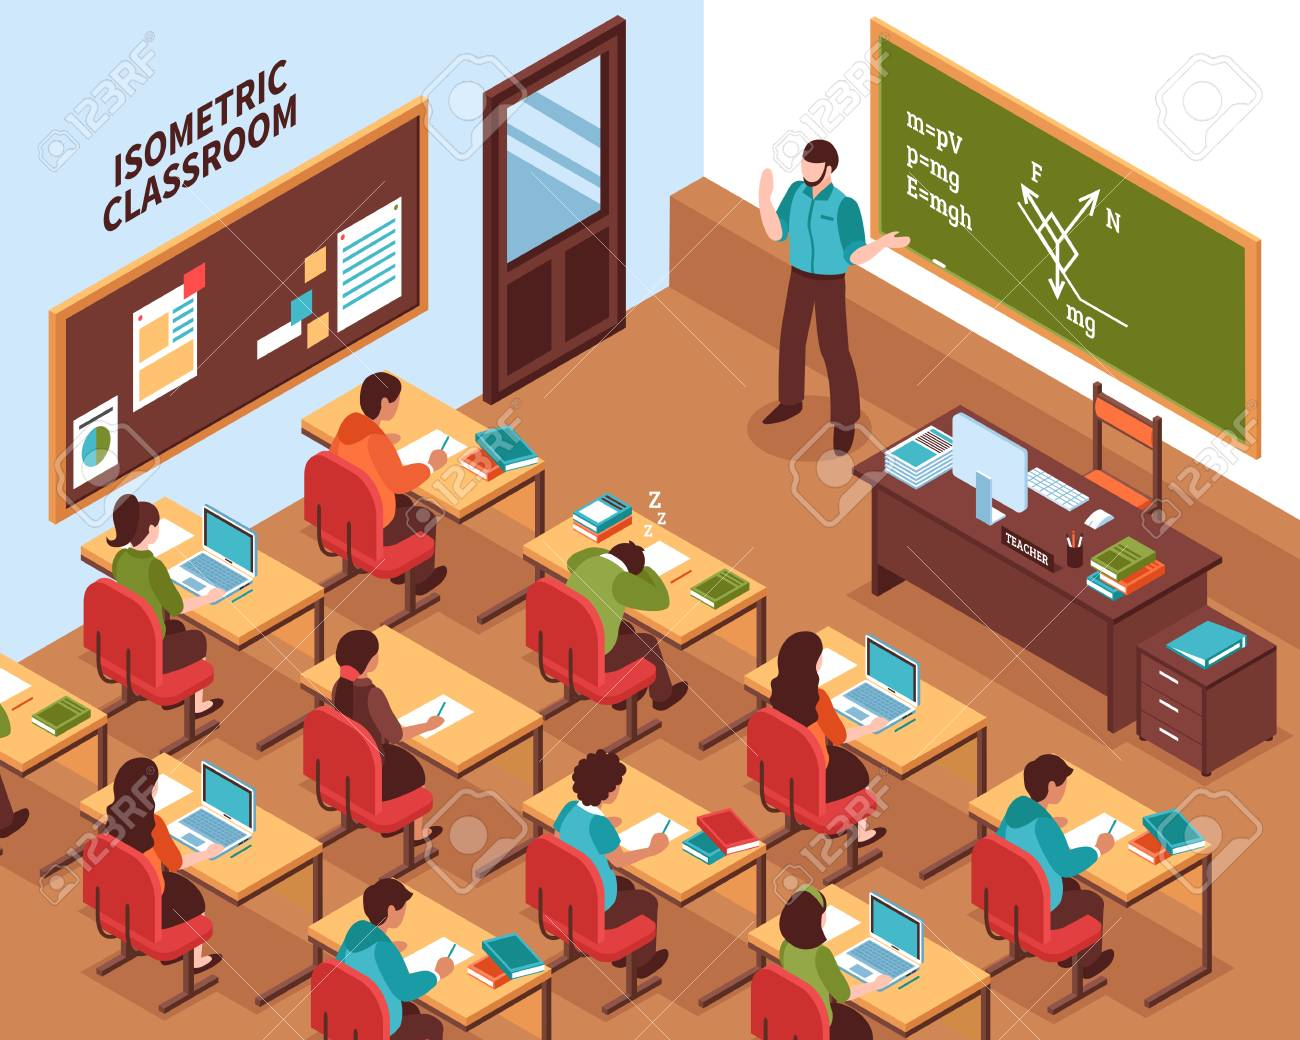 High school lesson isometric poster with teacher at chalkboard and listening students at their desks vector illustration - 91855902